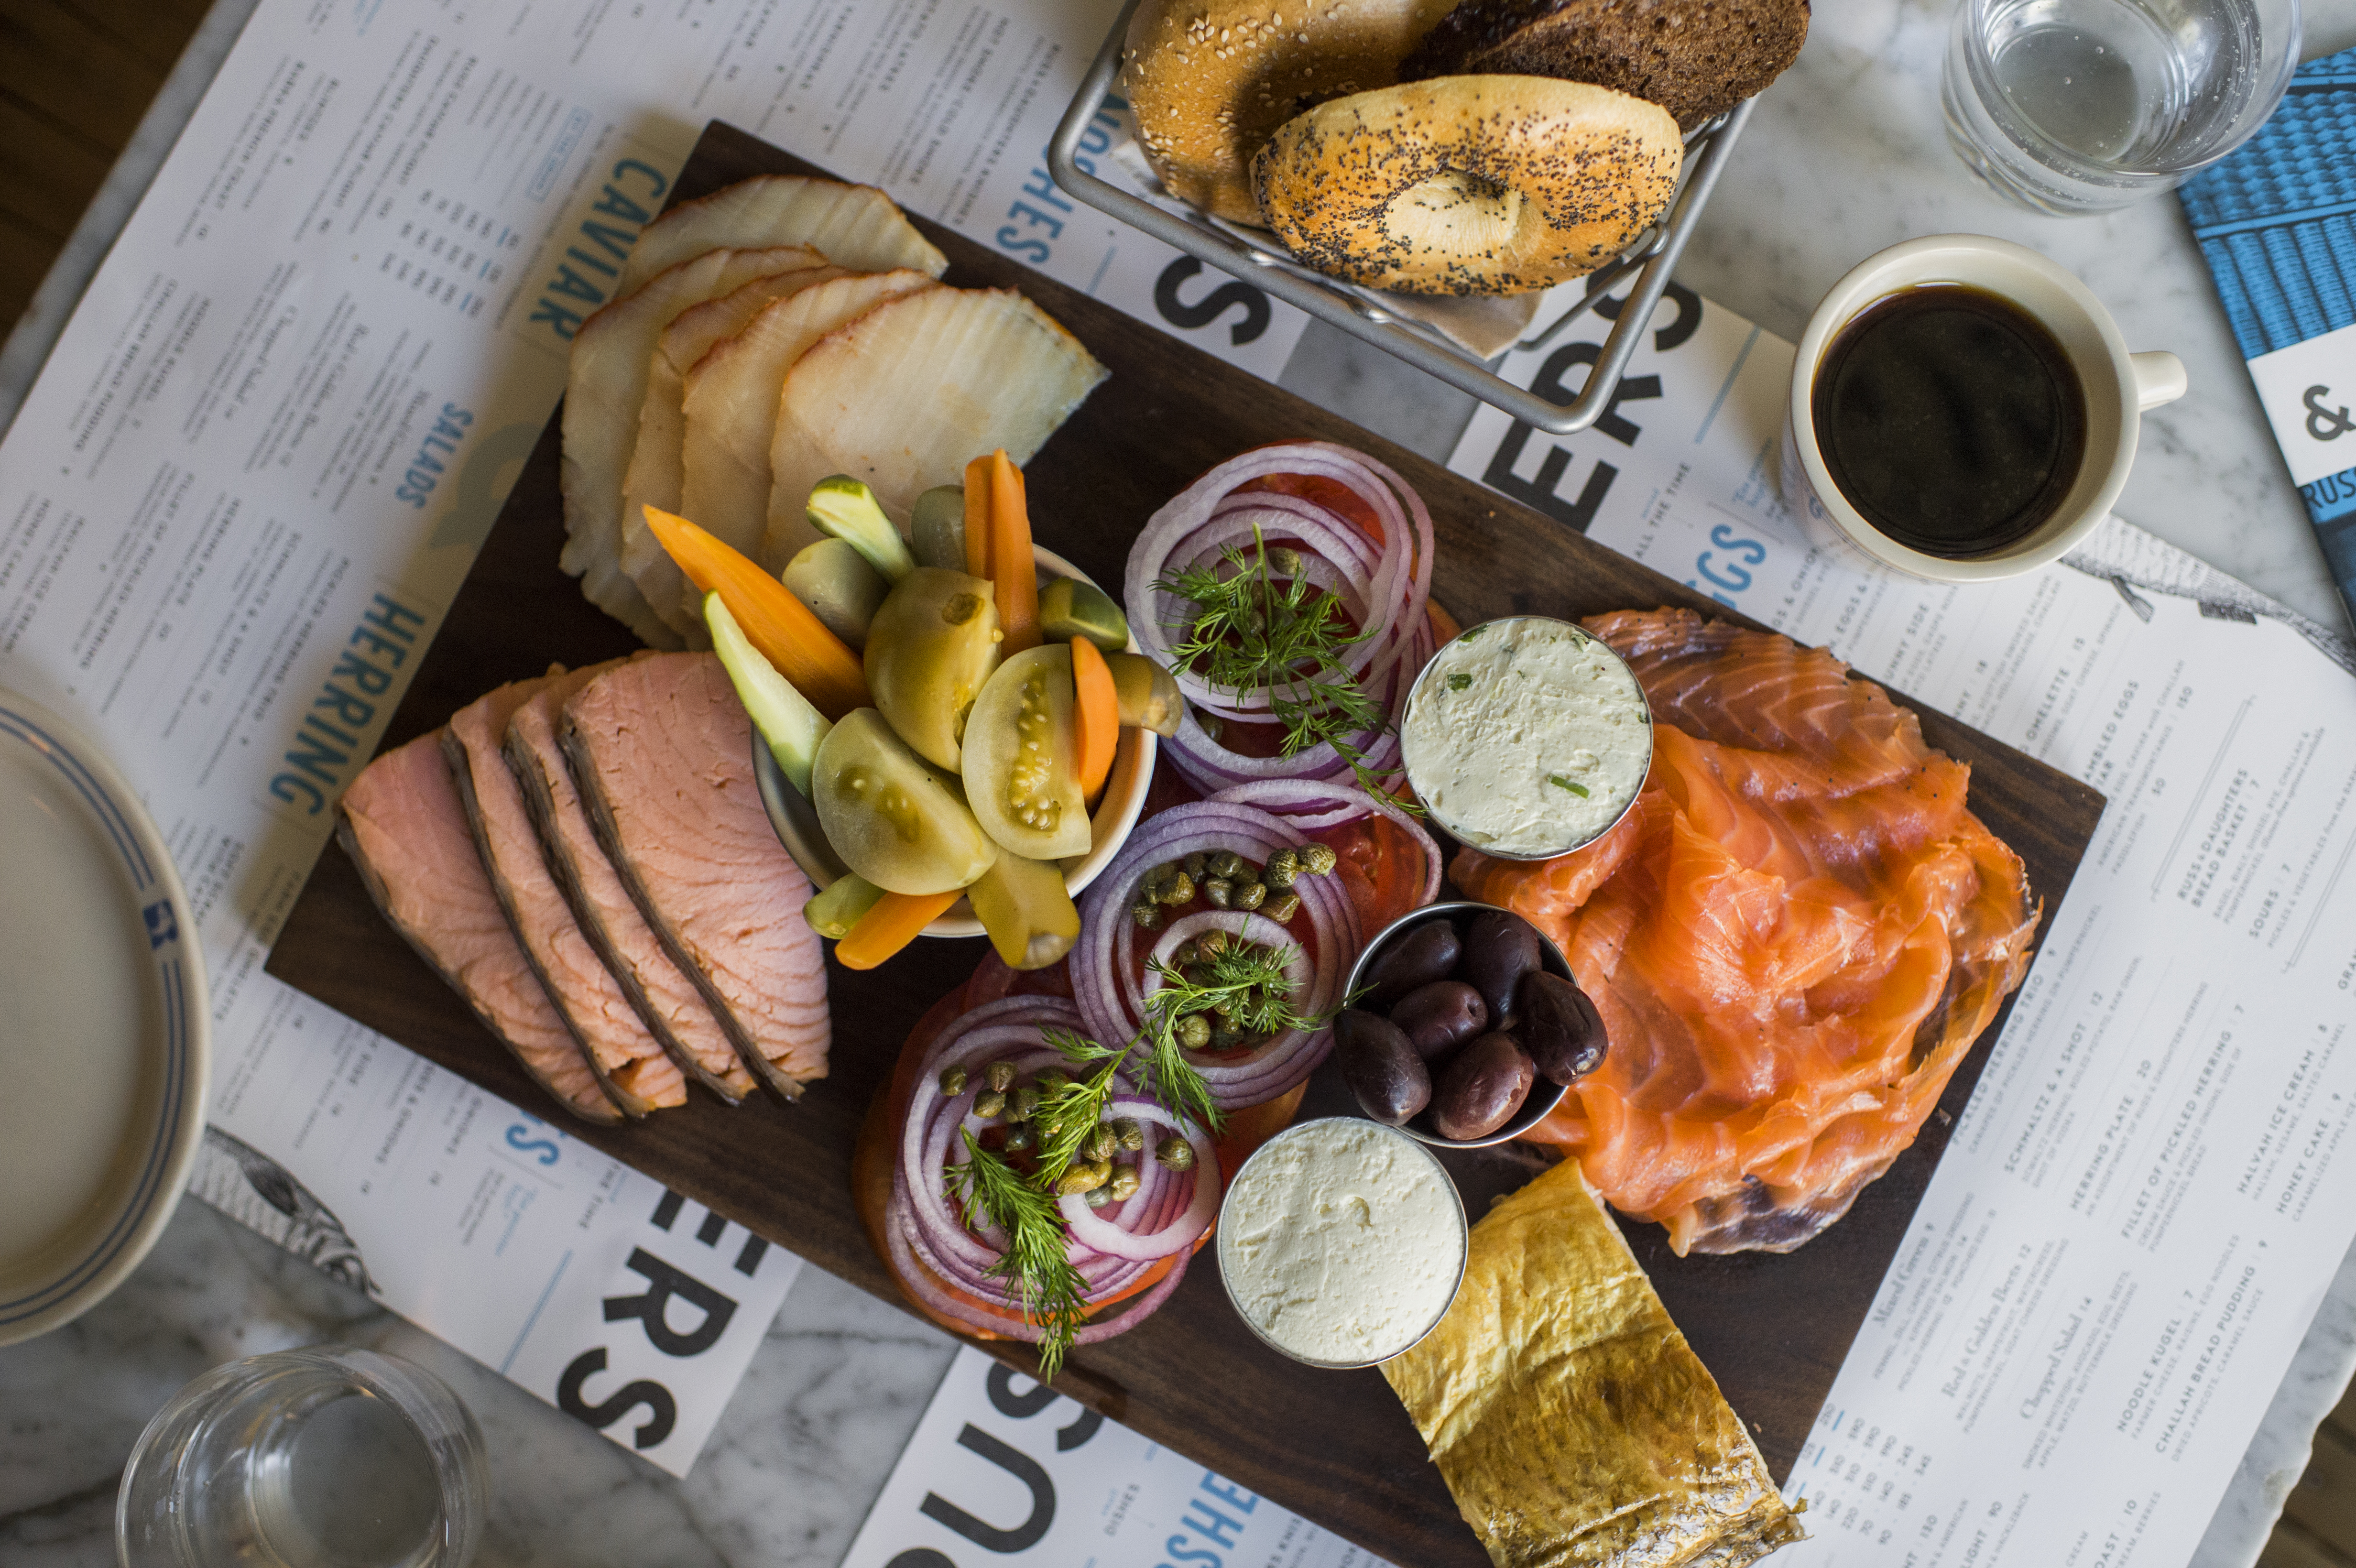 A wooden board covered in smoked fish, cream cheese, and pickled vegetables